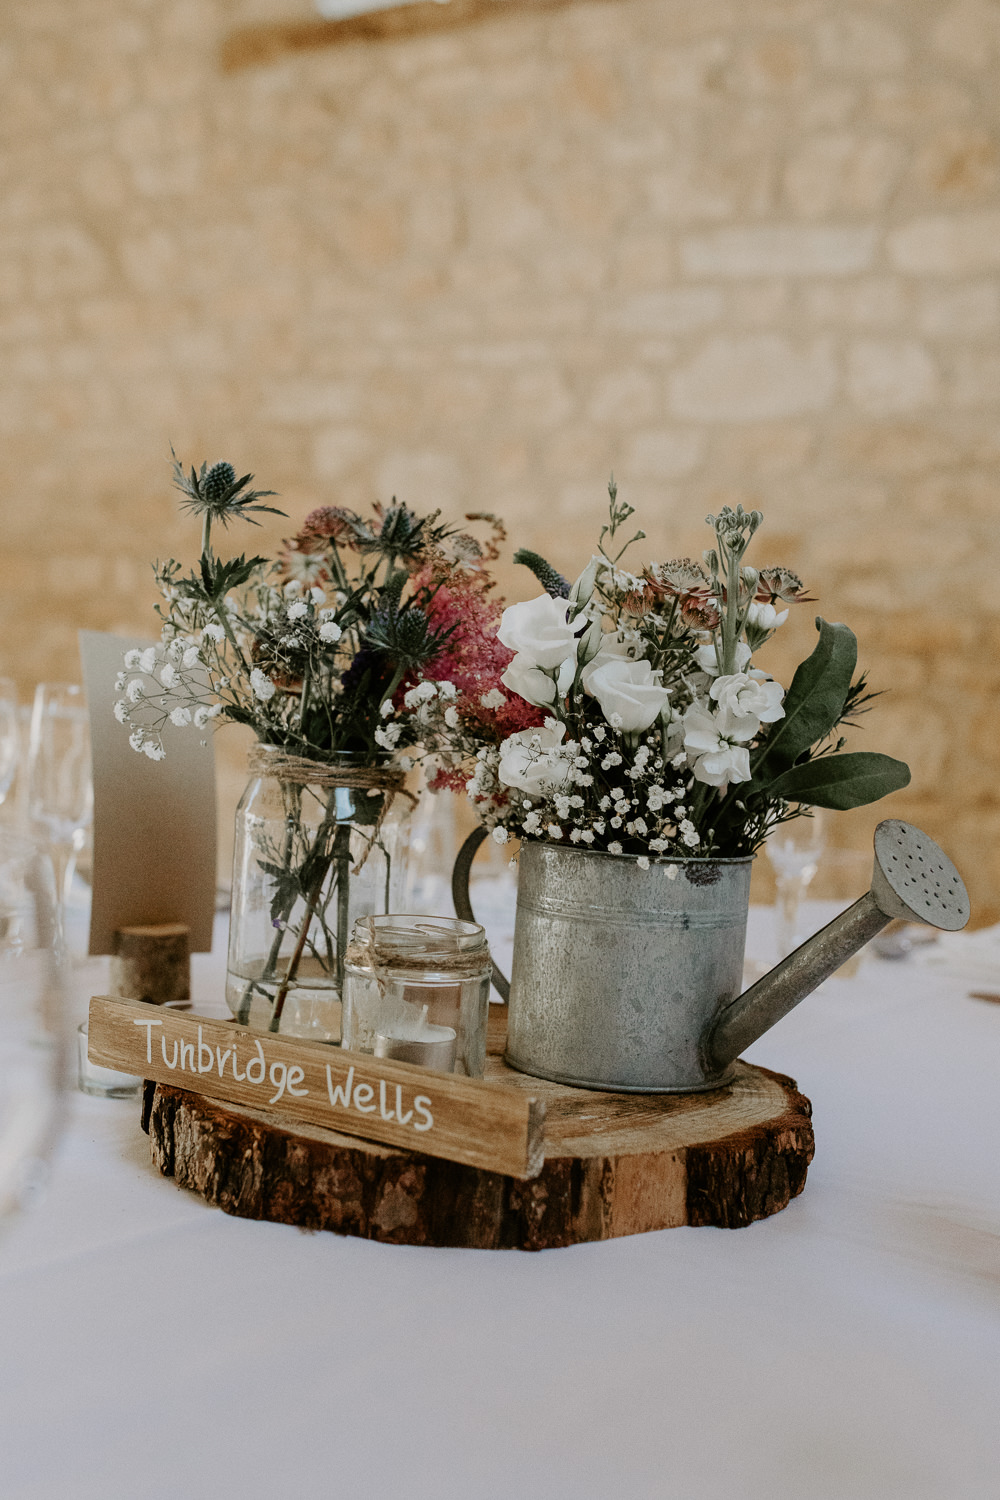 Flowers Watering Can Pink Grenery Thisle Astilbe Centerepice Log Rustic Table Barn Upcote Wedding Siobhan Beales Photography